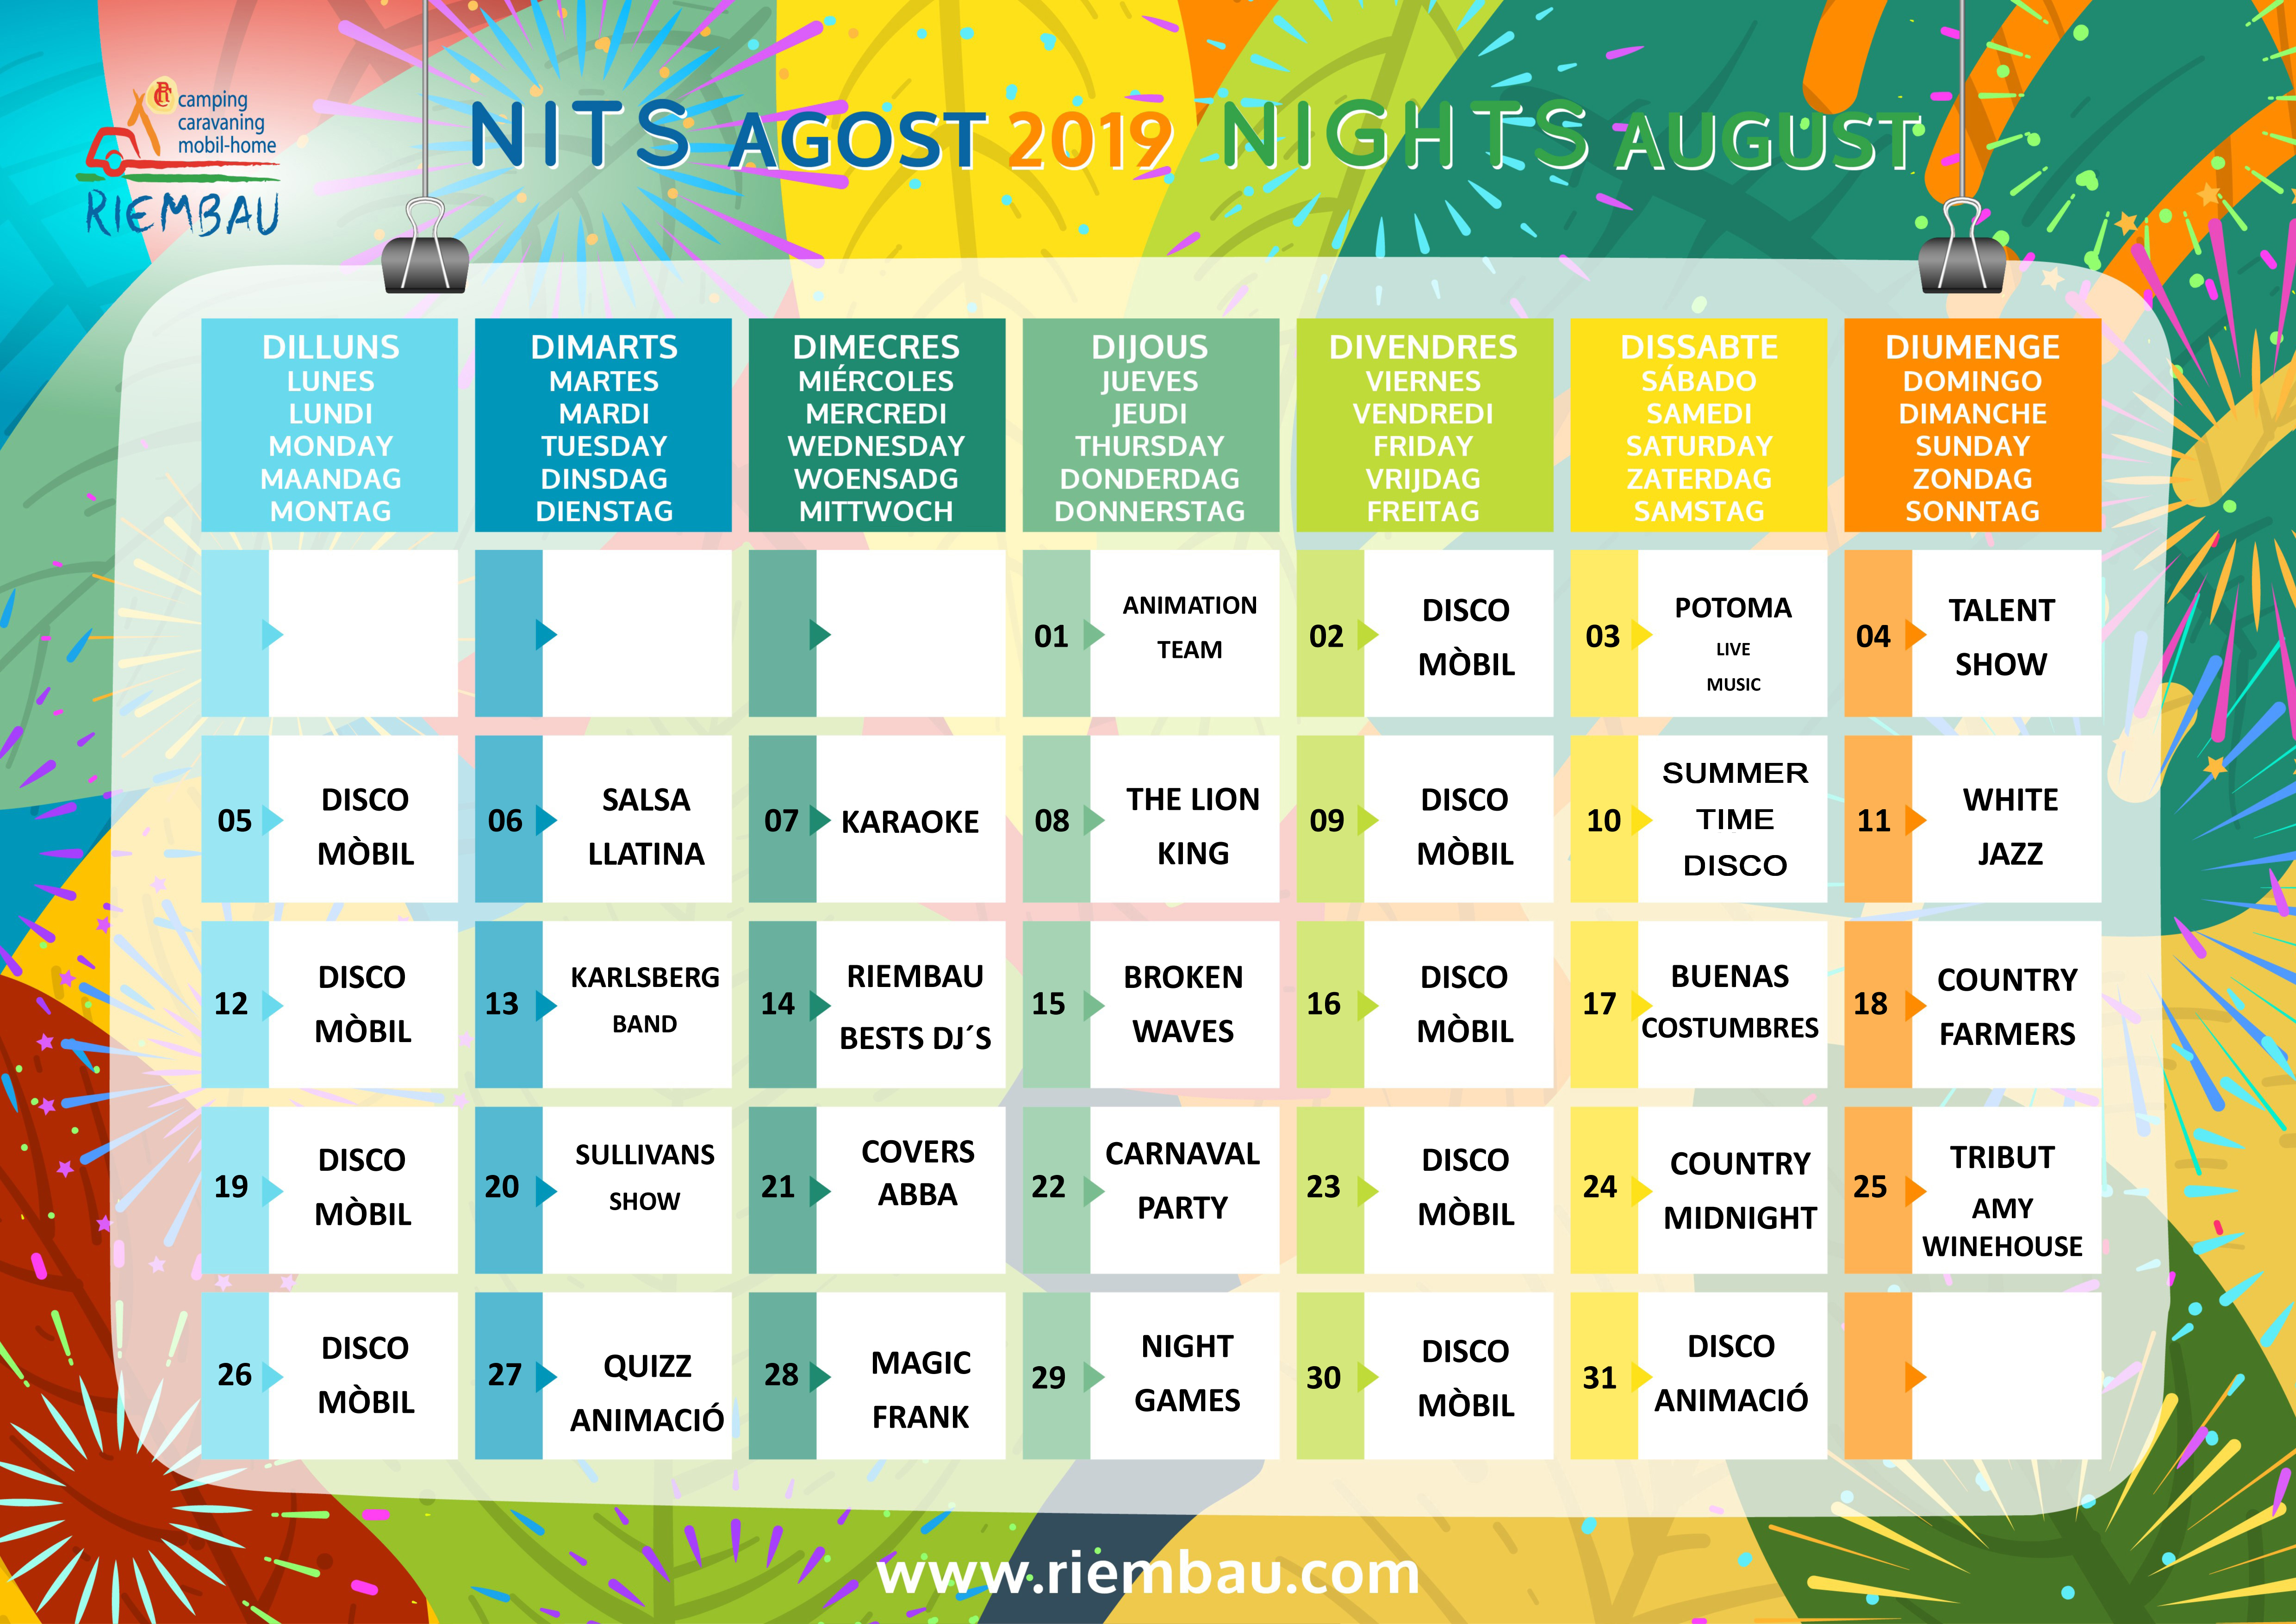 August Nigths at Camping Riembau in Platja d'Aro!